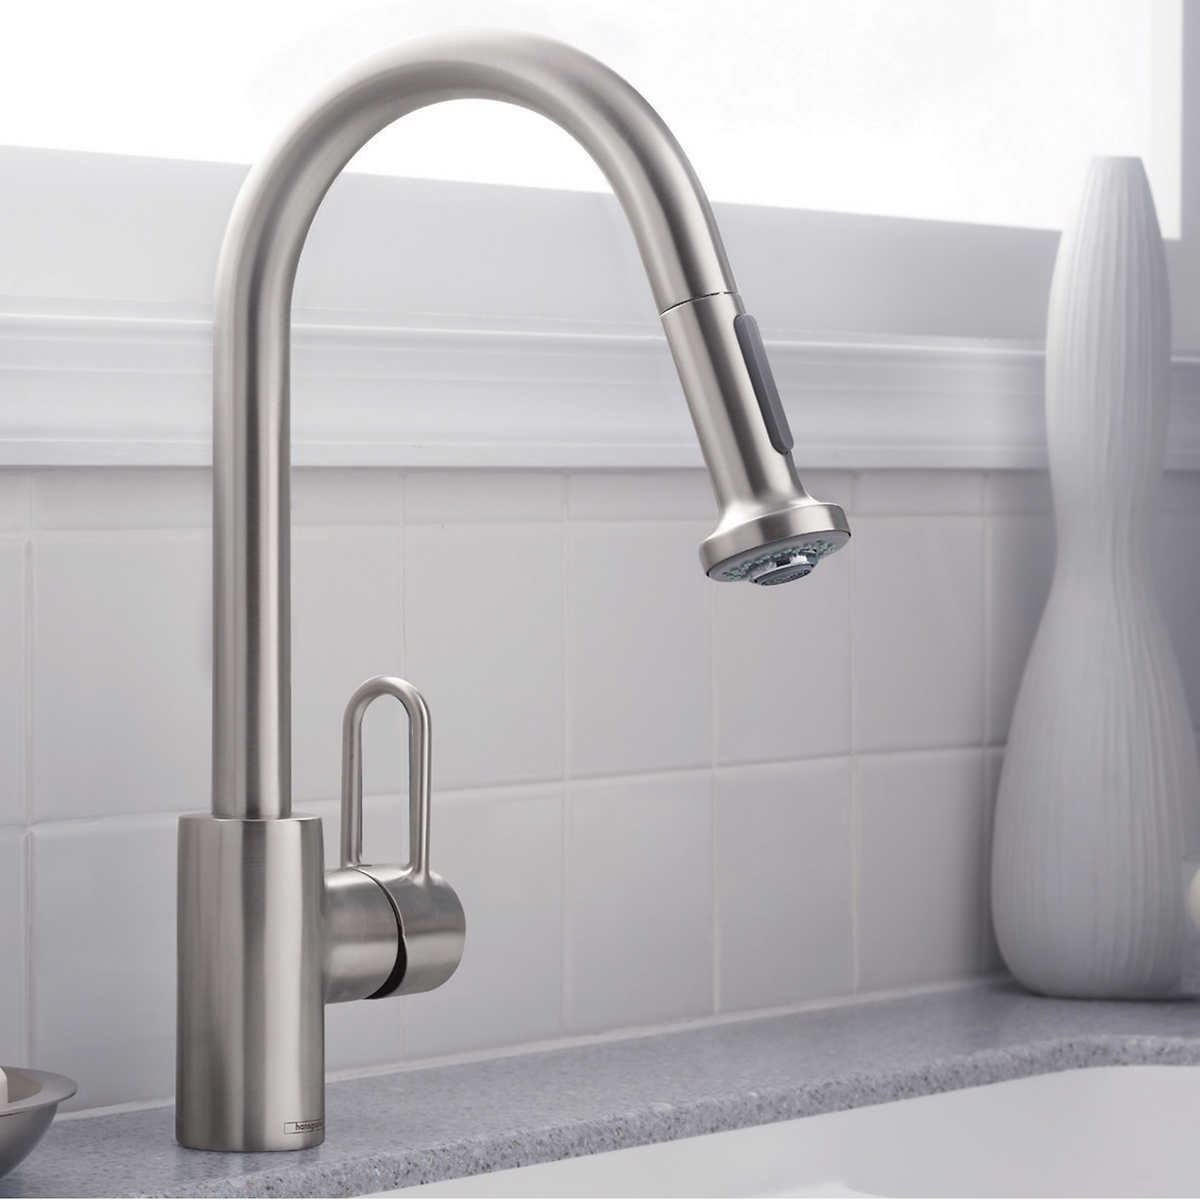 hansgrohe cento kitchen faucet in steel optik & chrome finish